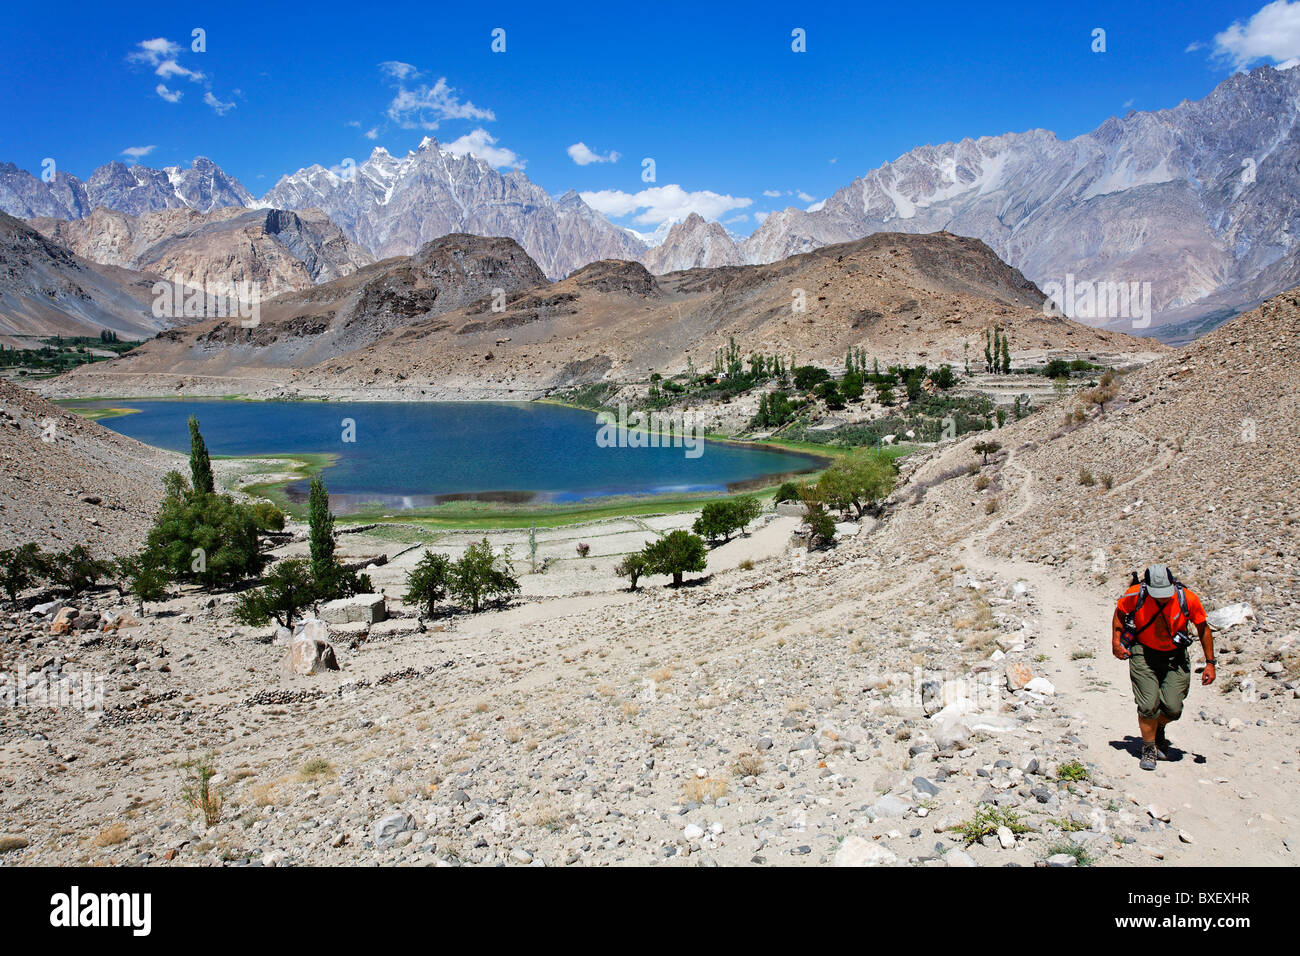 Pakistan - Karakorum - Hunza Valley - Passu - Borith Lake and mountains - Stock Image